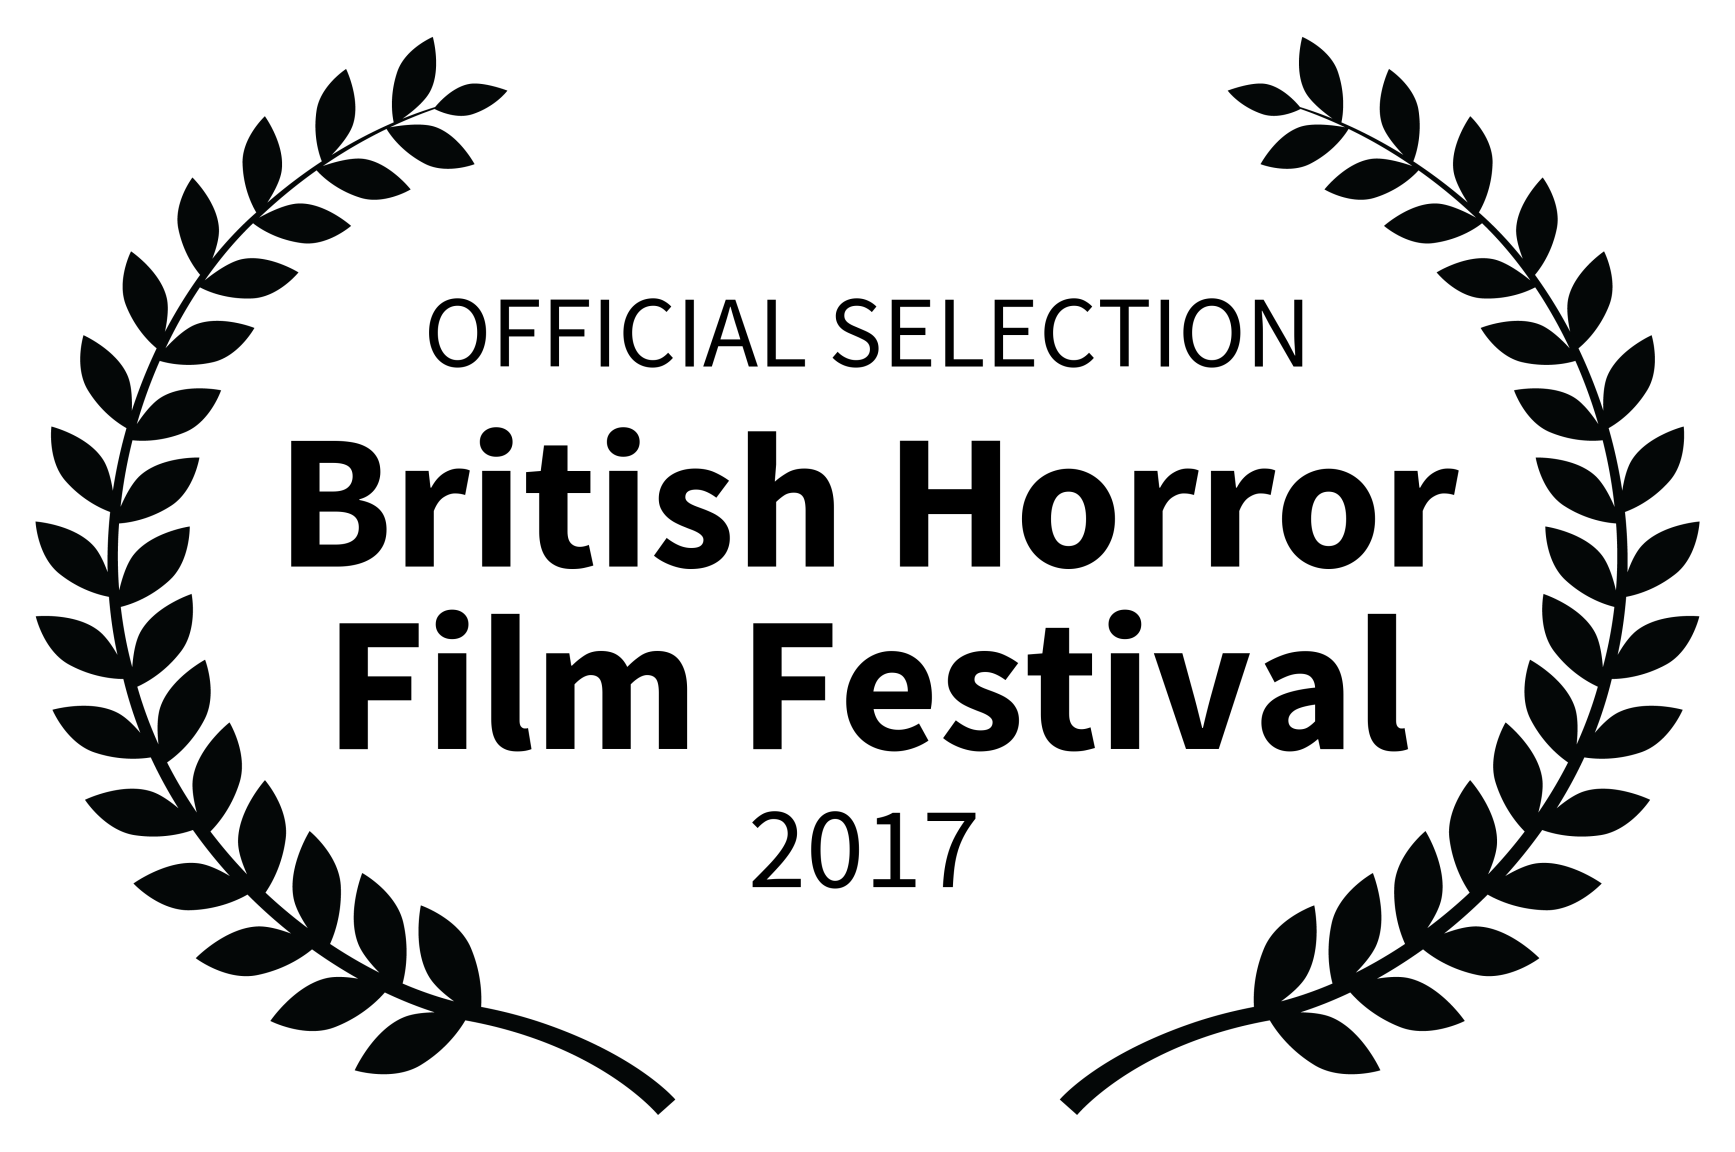 BRITISH HORROR FILM FESTIVAL  - EAM, 20 Dunhill Row, London, EC1Y 8UESaturday, November 4th at 1:30pmTICKETS AVAILABLE AT: http://www.thefilmfestivalguild.com/bhff2017